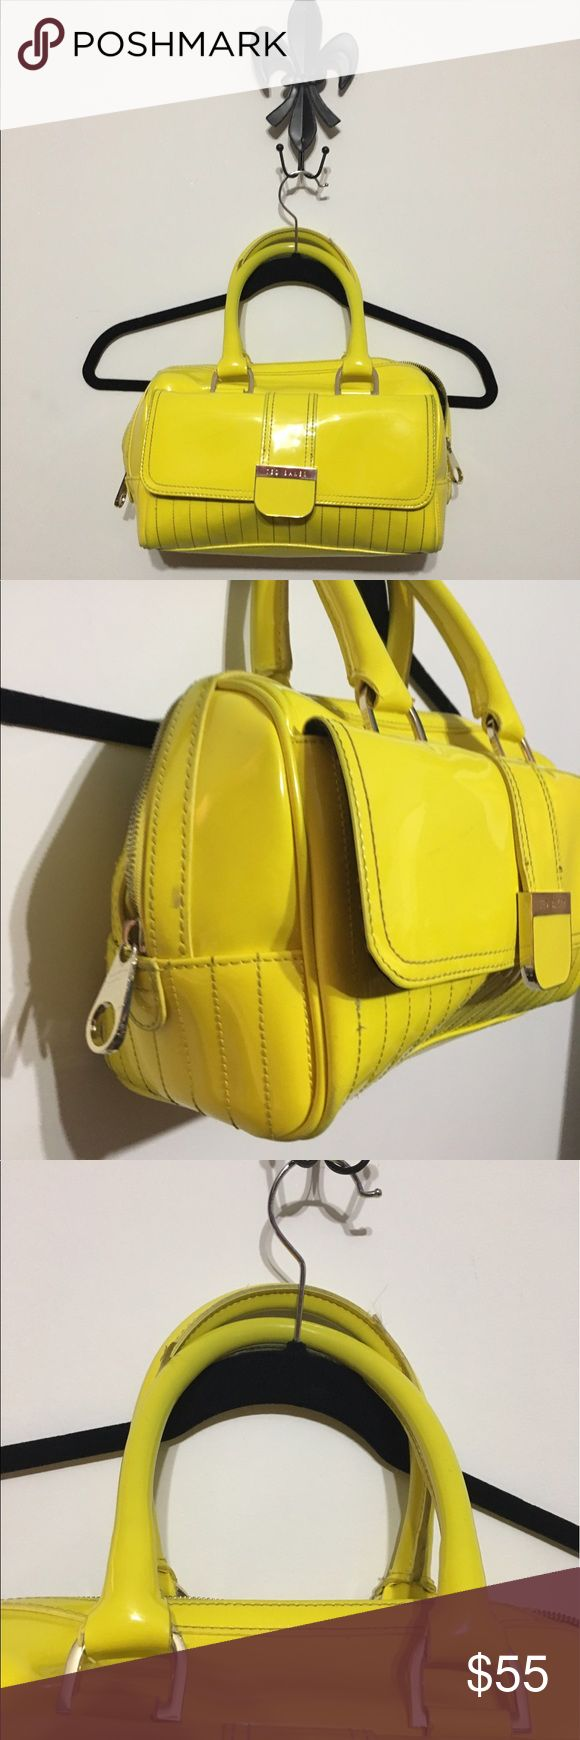 Ted Baker Vibrant Yellow Patent Satchel handbag Ted Baker Vibrant! Yellow Patent Gold Bulldog Bowler Drs Handbag Purse Purchased from Nordstrom. In good condition except for: -There are some marks on the bottom as shown in the pics. -The plastic that covers the seams on the handle is coming off as shown in the pics.  Don't forget to check out my other designer items. I'm cleaning out my closet's.   Please note all sales are final 😊 Thank you for viewing🎀 Ted Baker Bags Satchels